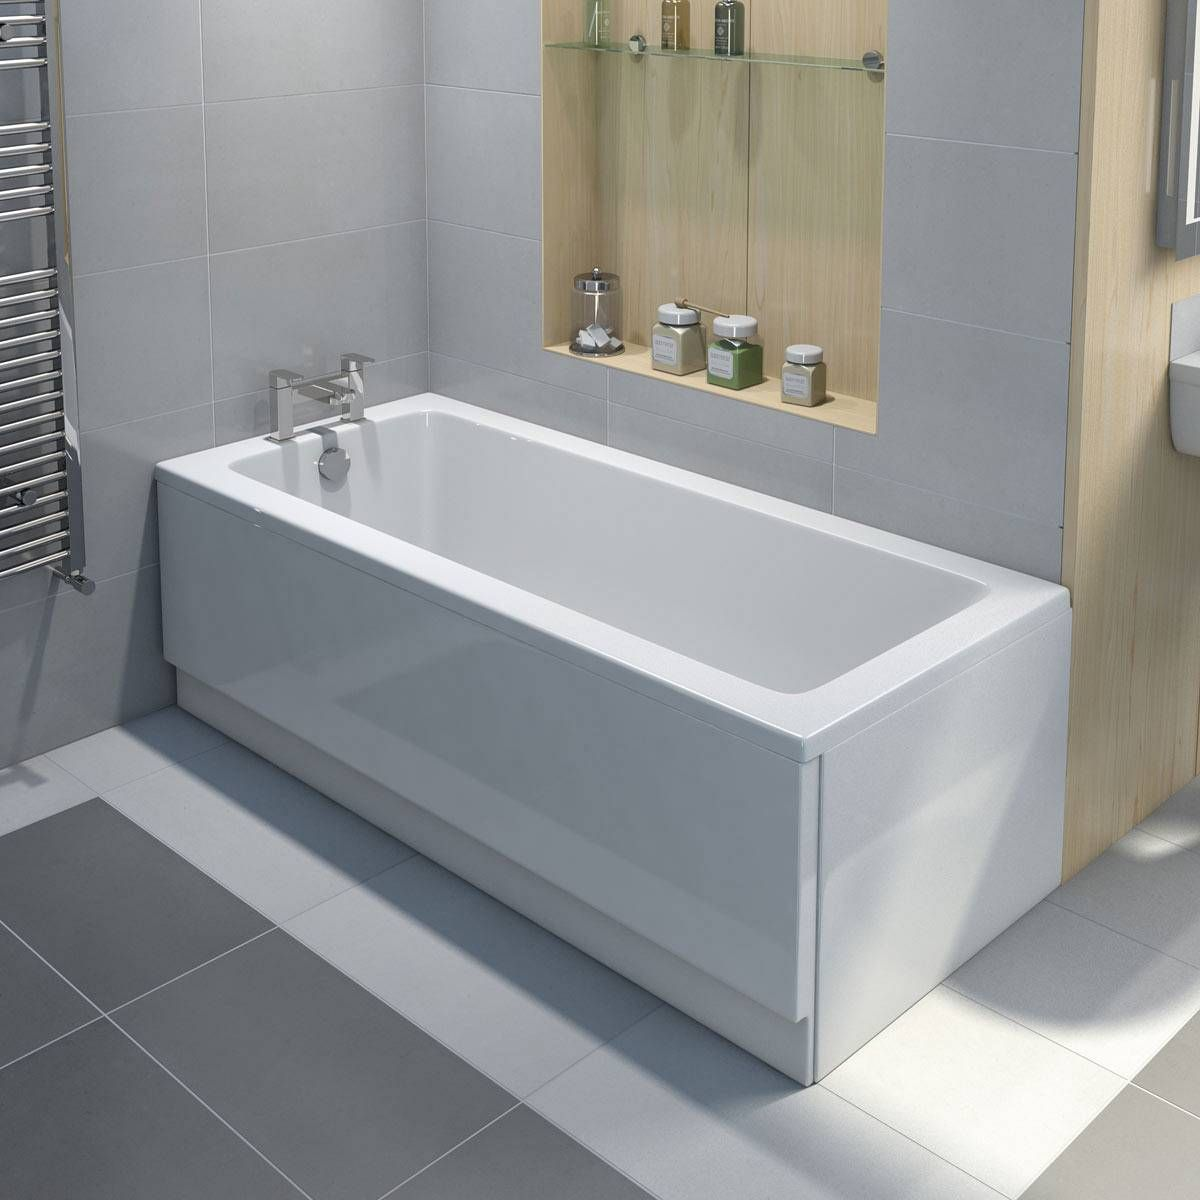 Kensington Bath 1500 X 700 Victoria Plumb Rooms